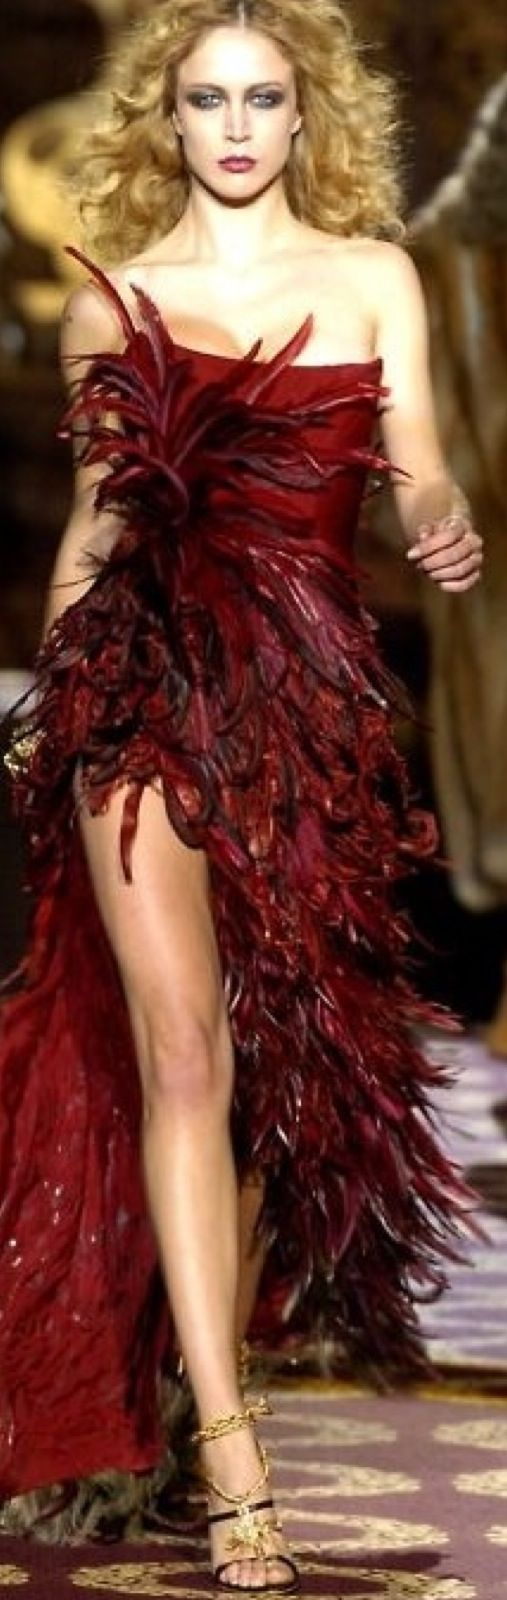 Evening dresses red colour hair